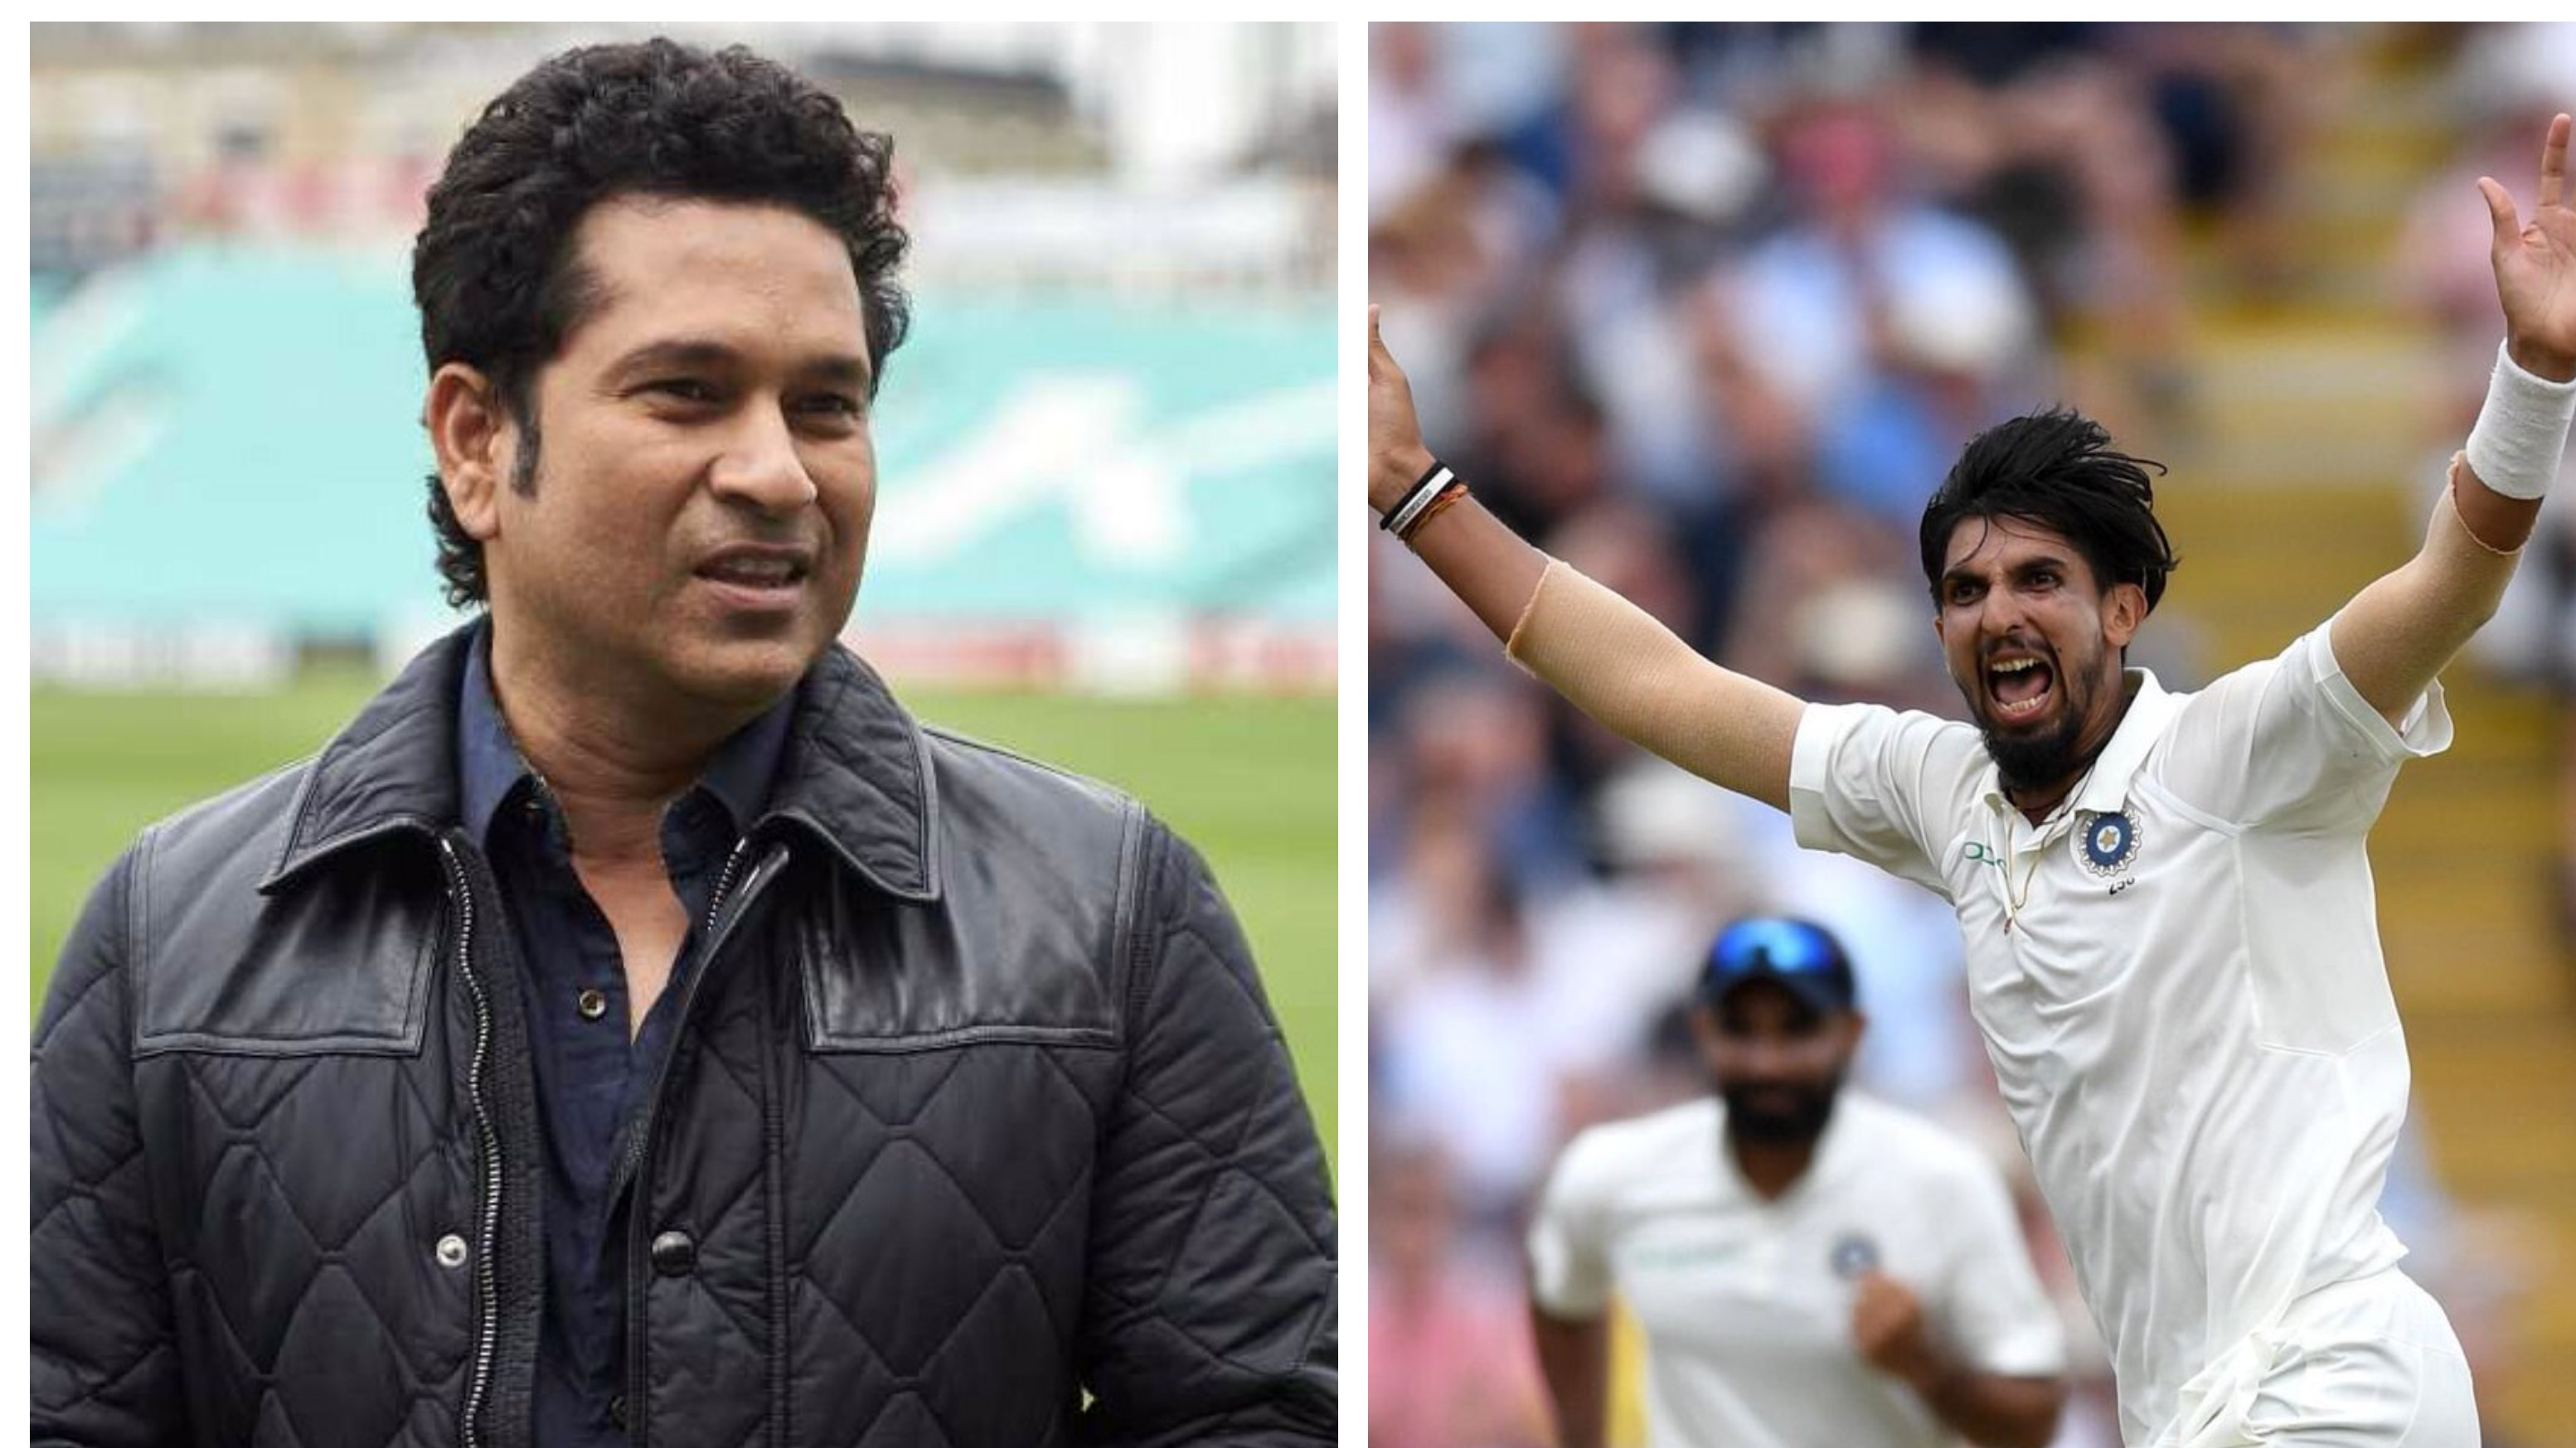 ENG vs IND 2018: Sachin Tendulkar praises Ishant Sharma for his fantastic spell in Edgbaston